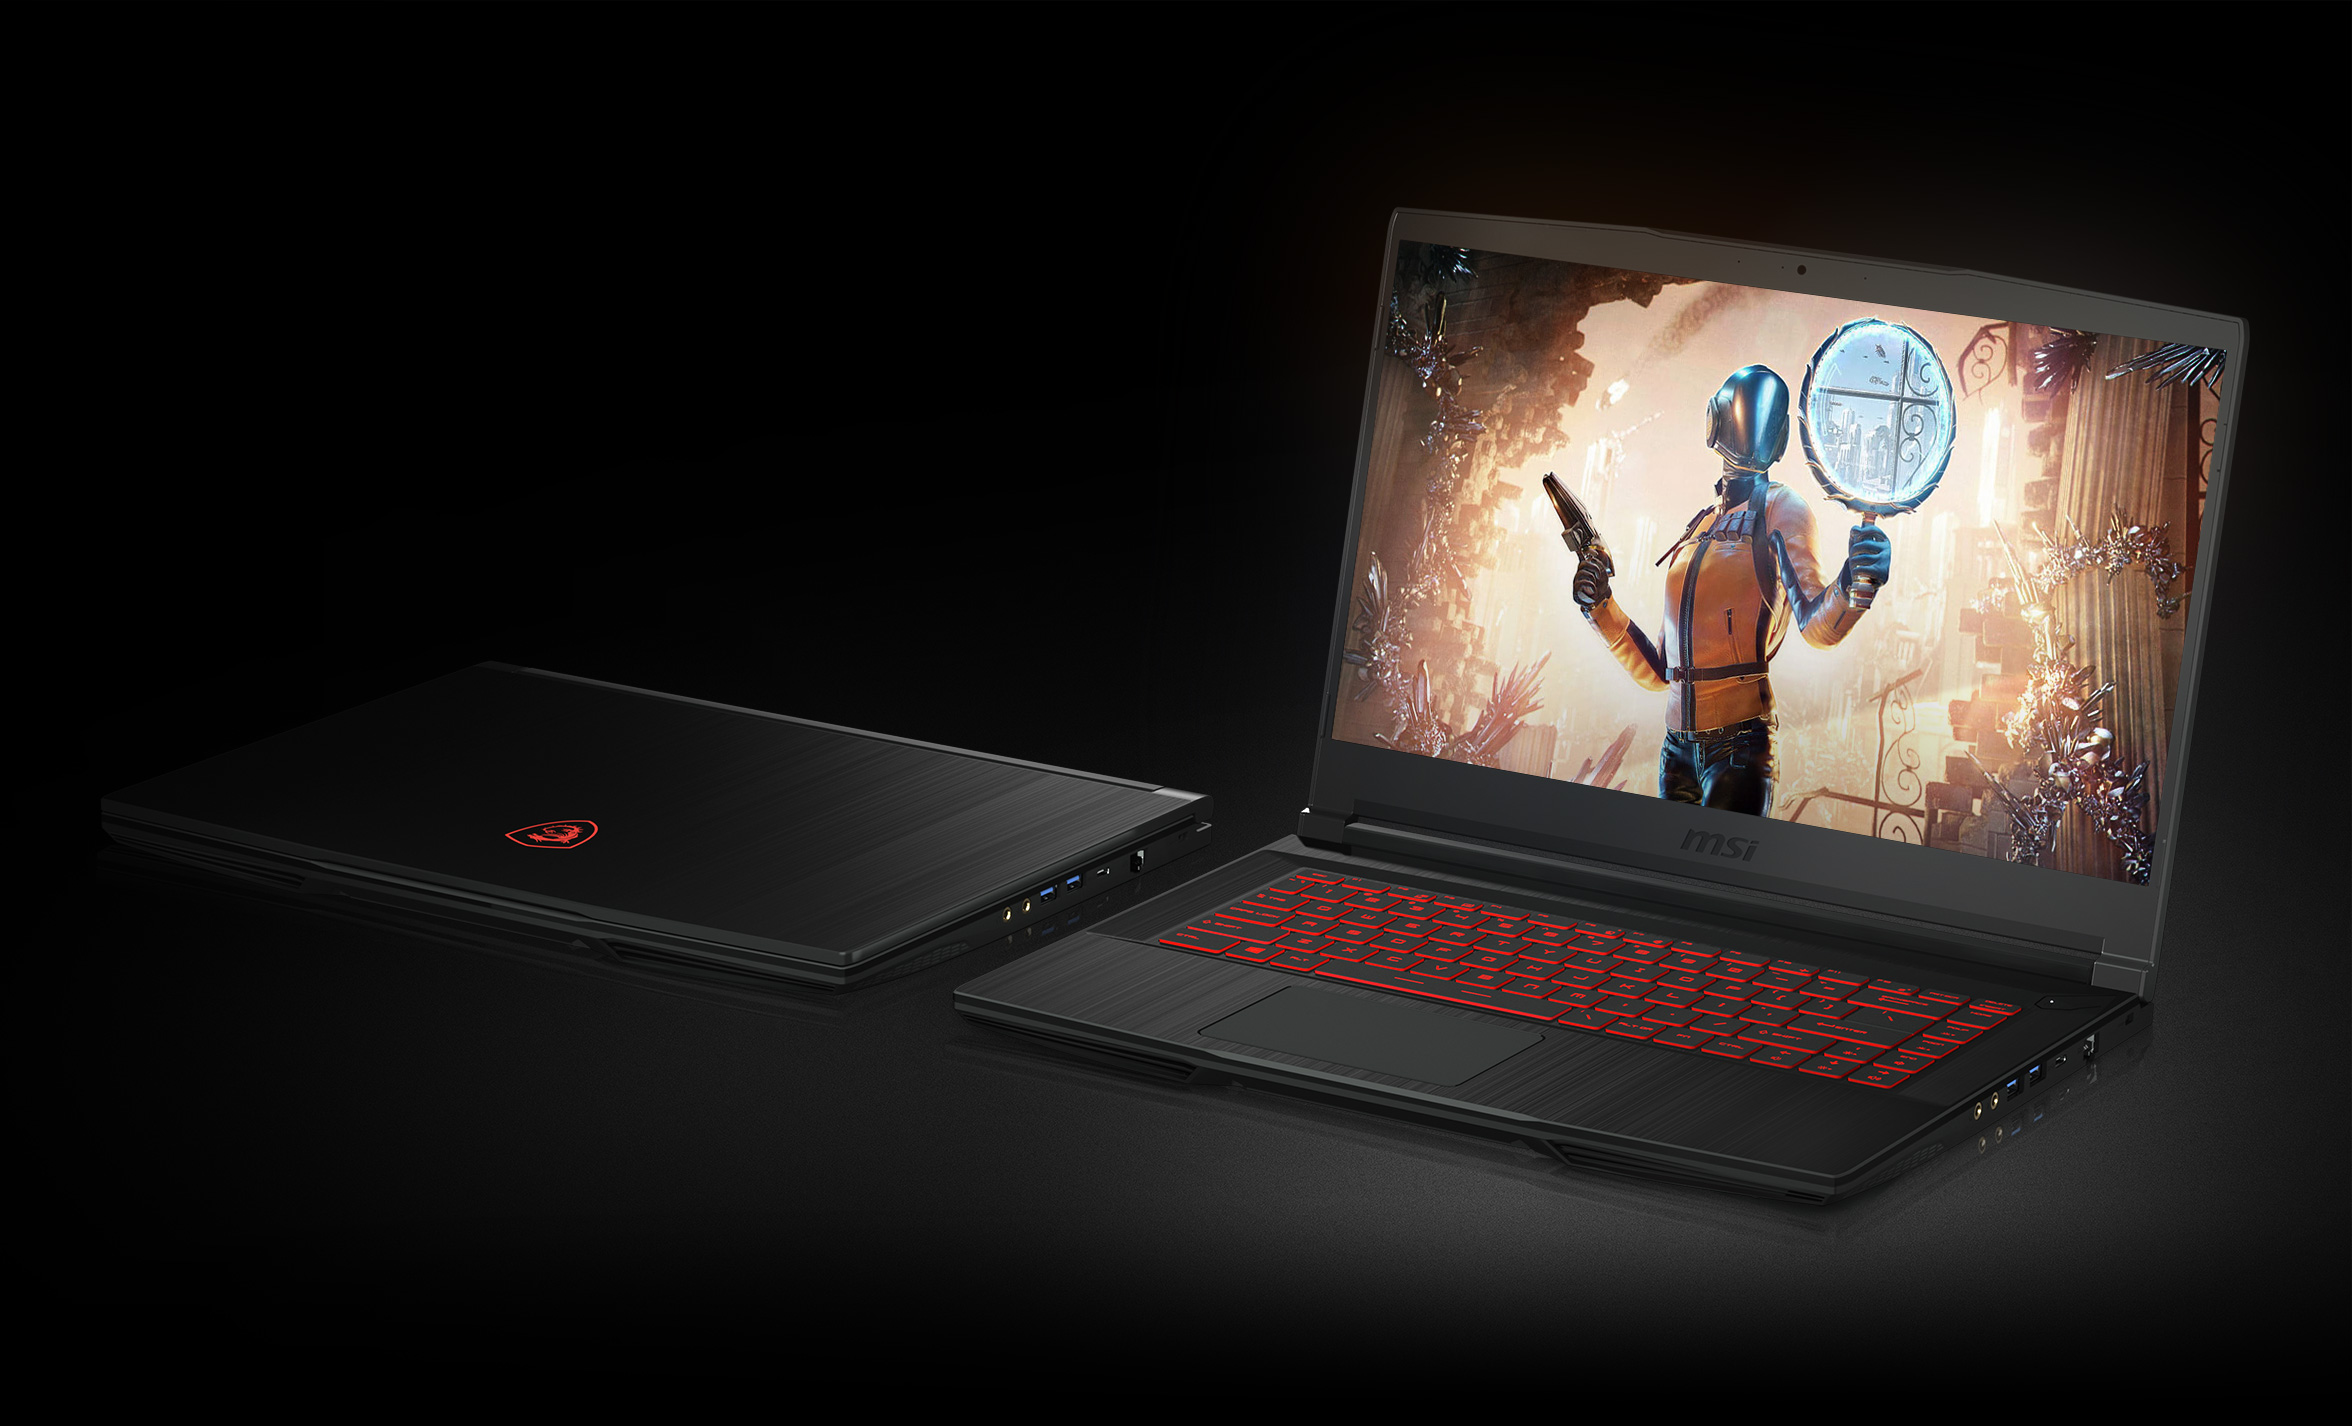 MSI launches GF-63 Gaming Laptop with NVIDIA 1650 Max-Q graphics - TechnoSports